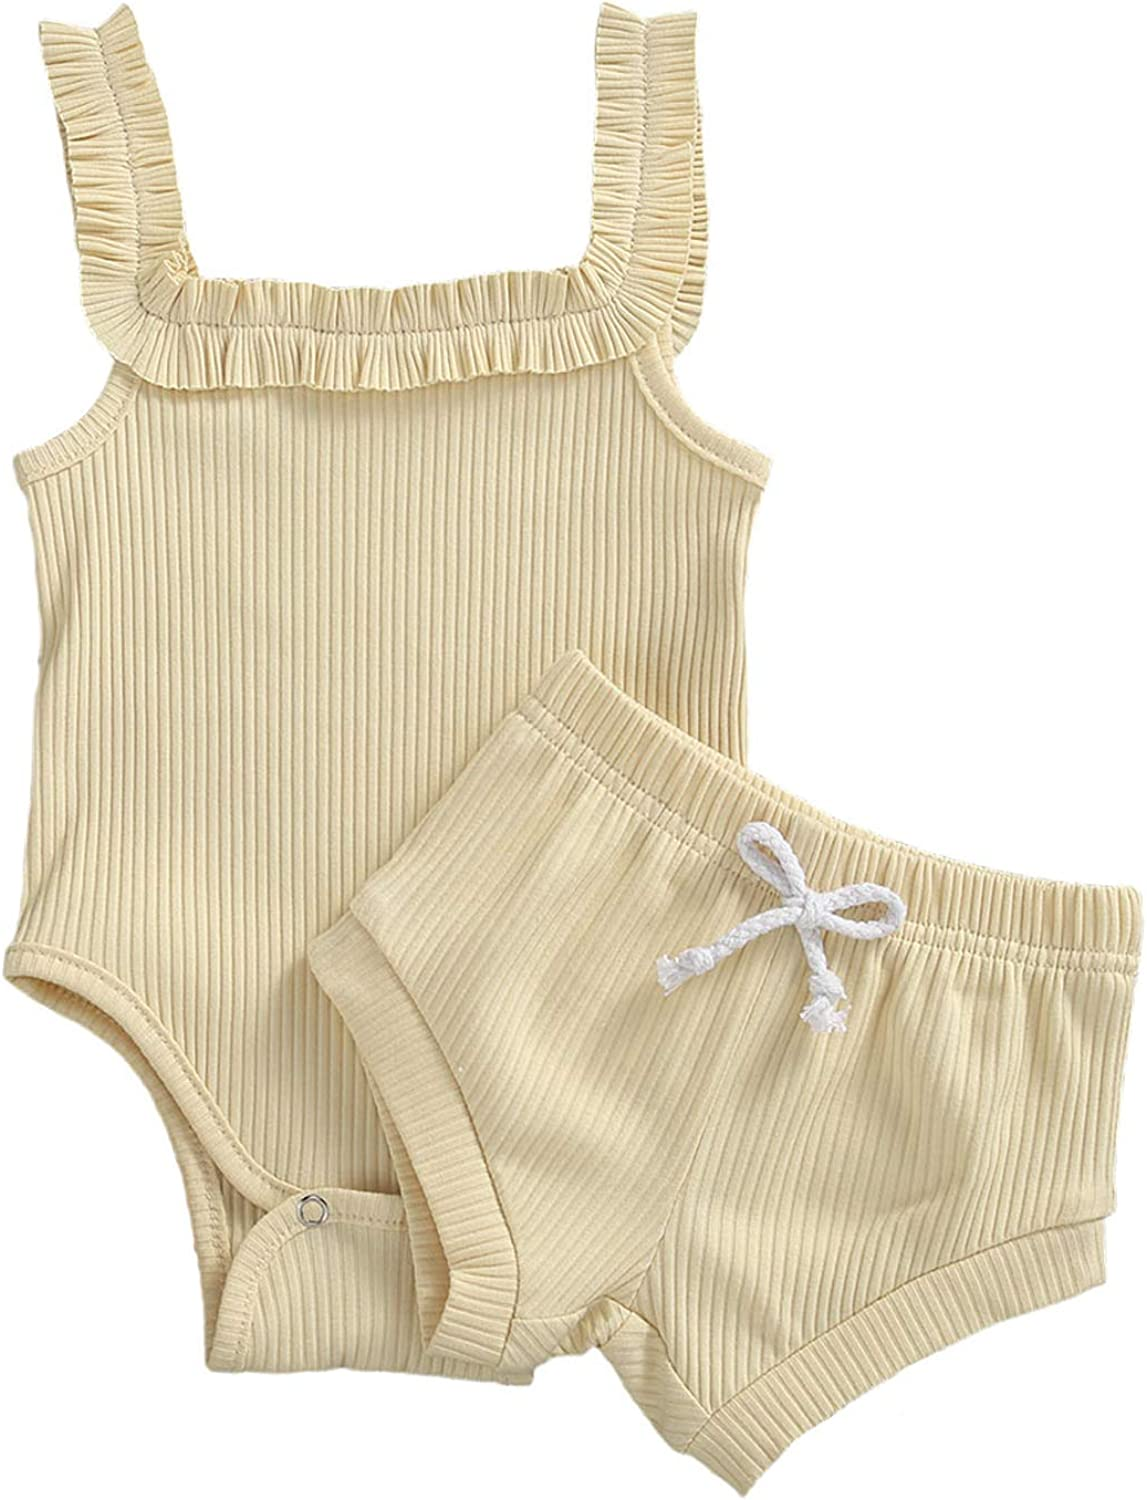 Toddler Baby Girls San Diego Mall Store Boys Ribbed Solid Clothes Romper Bodysuit Dra